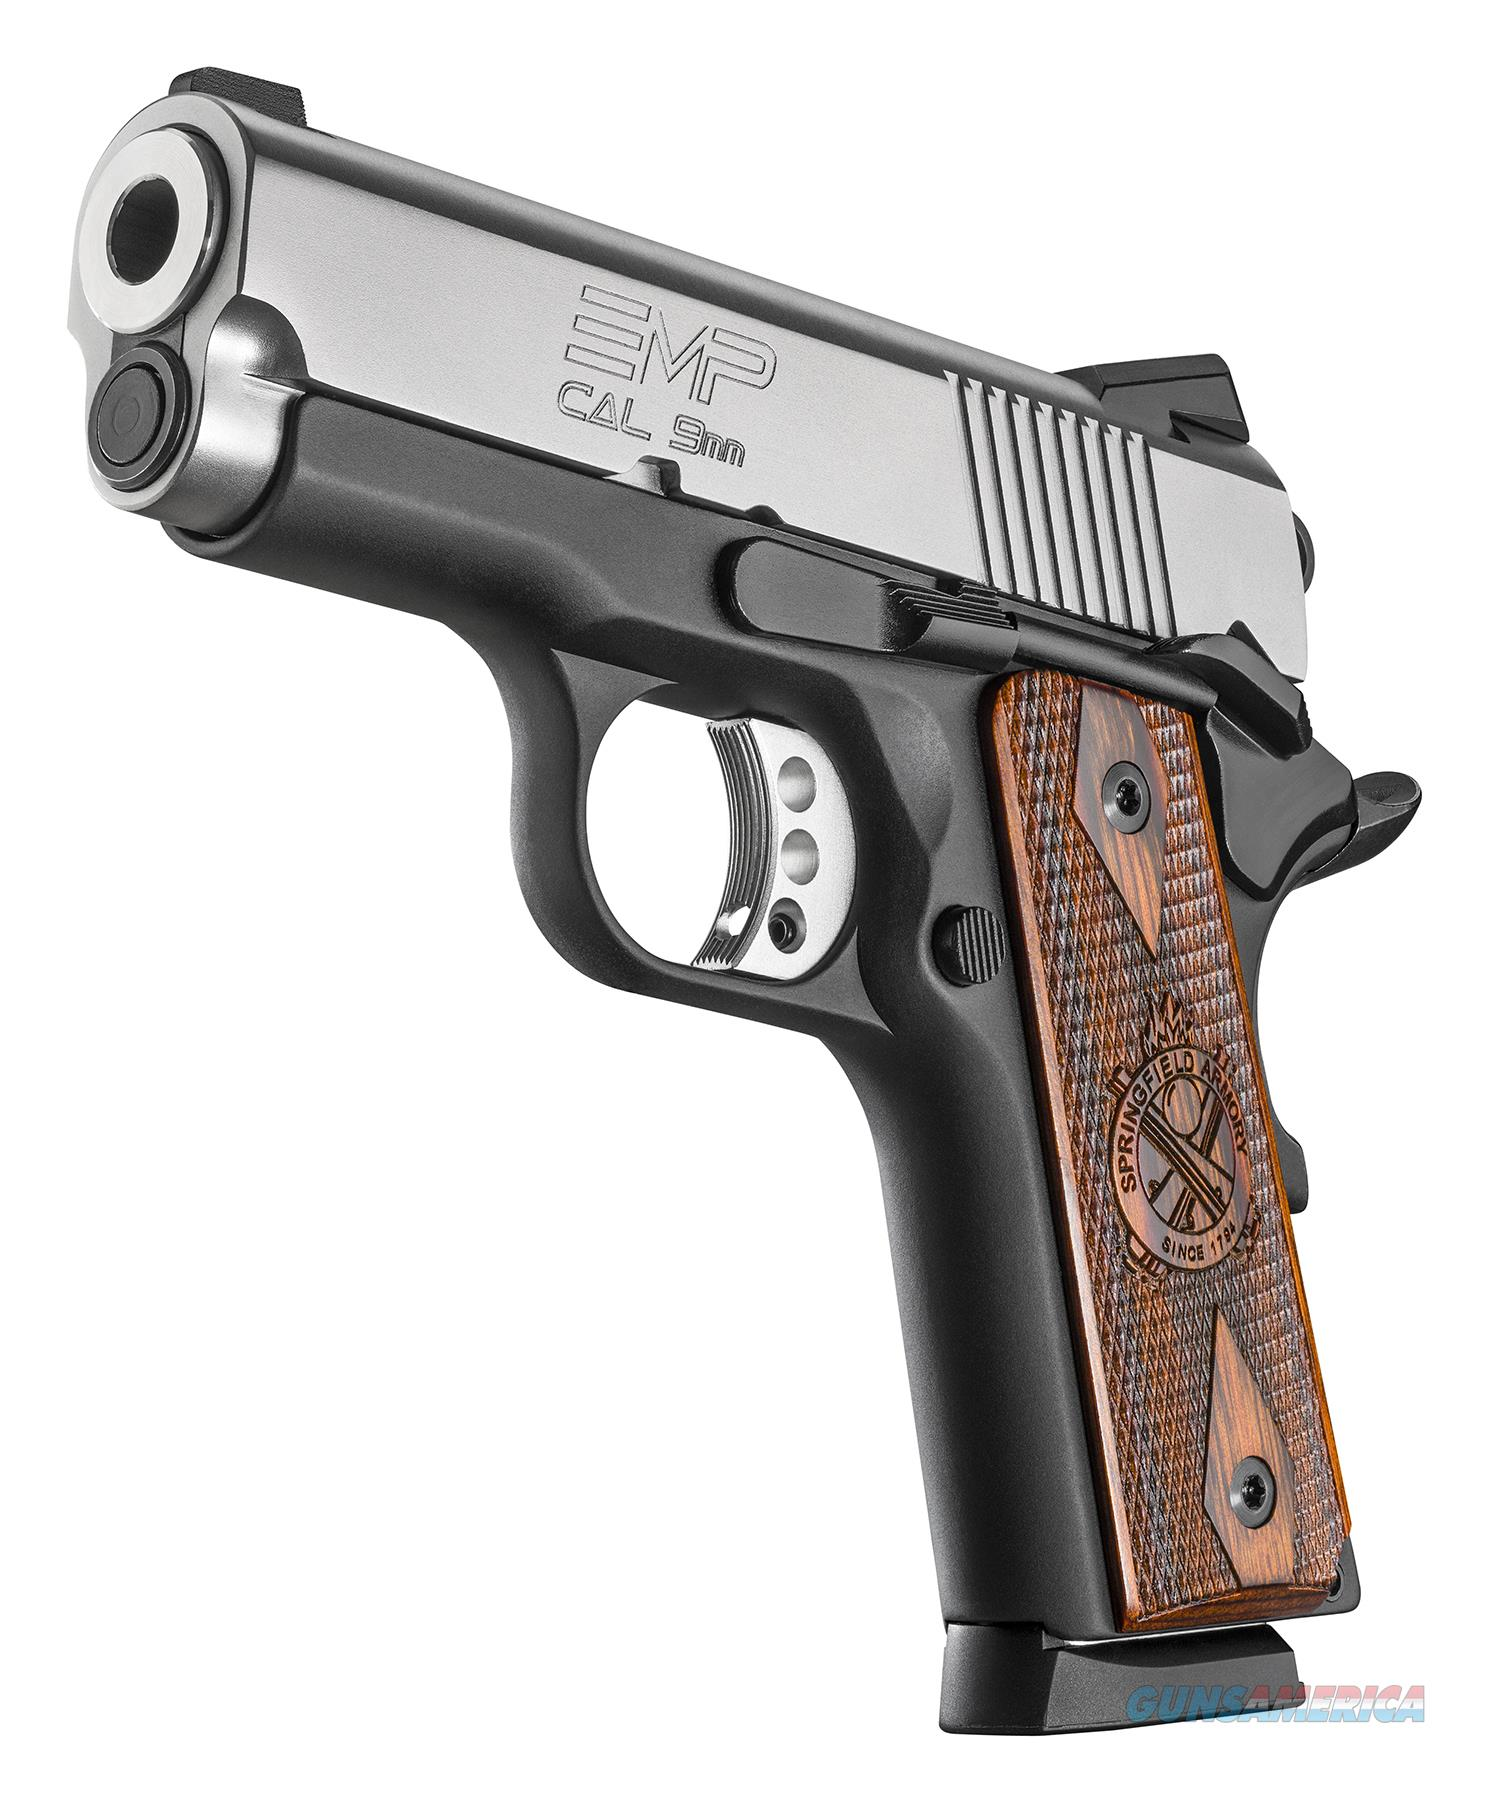 "Springfield Armory 1911 EMP 9mm 3"" 9+1 - New in Case  Guns > Pistols > Springfield Armory Pistols > 1911 Type"